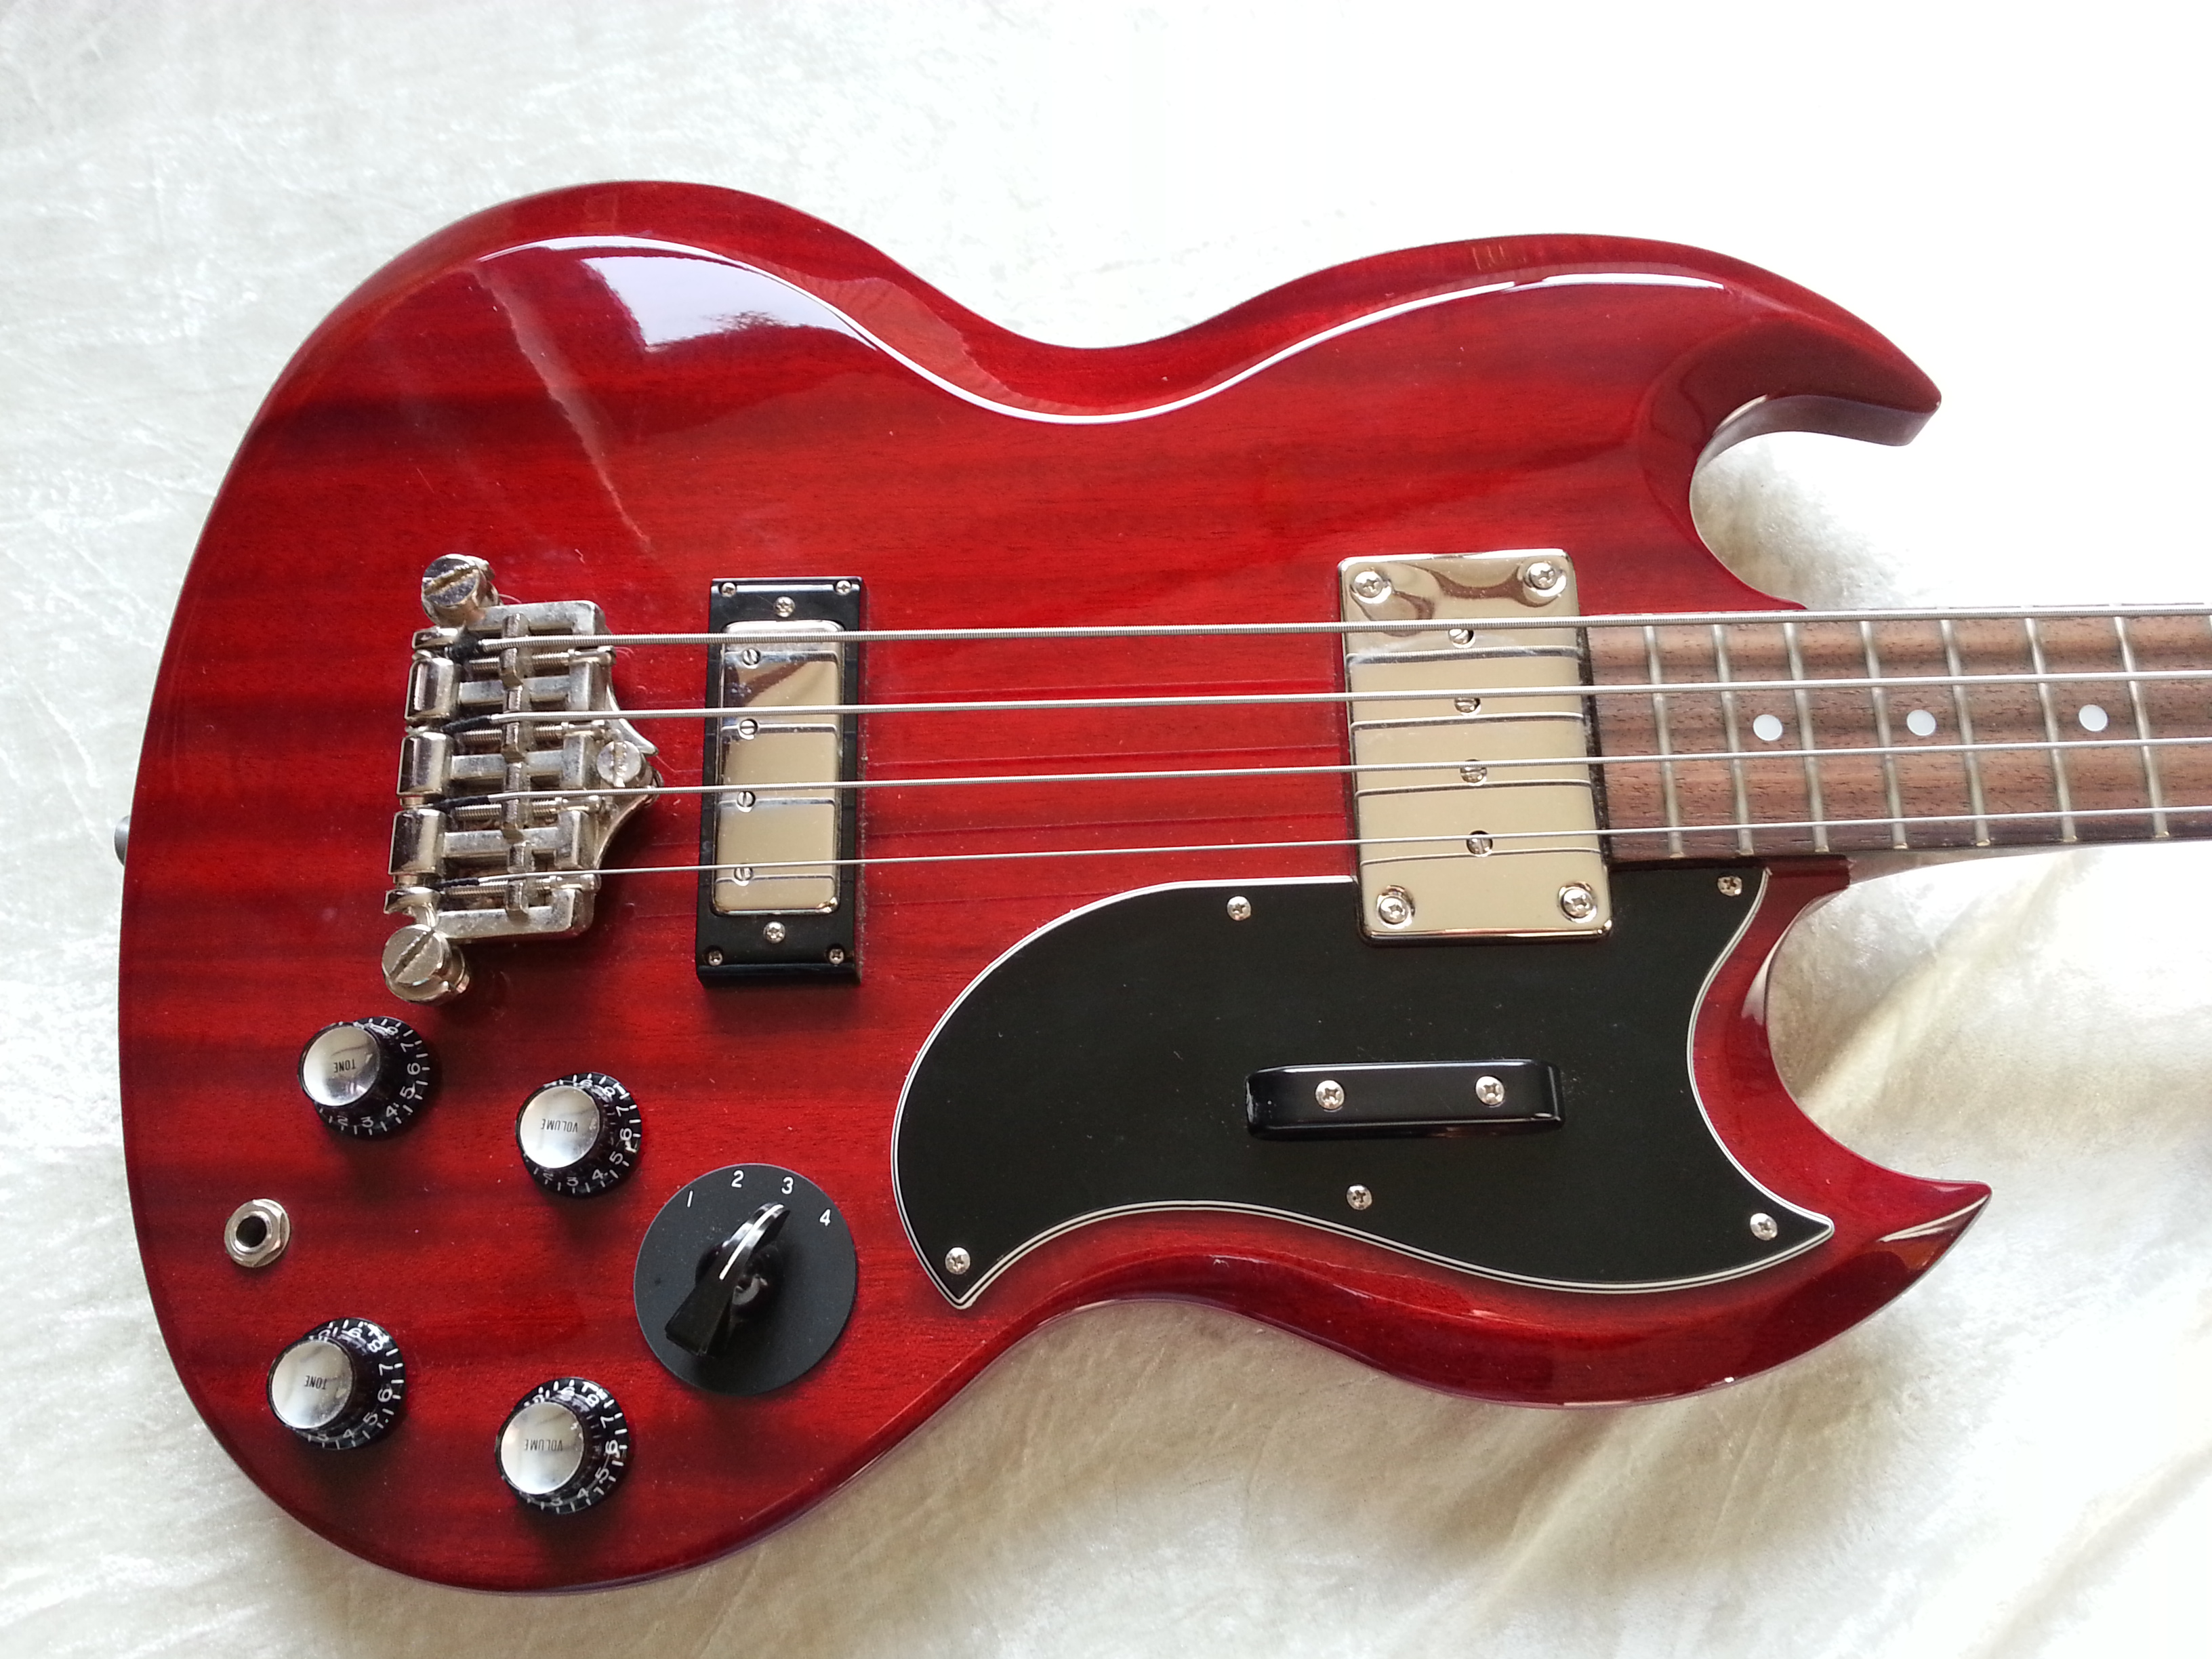 epiphone elite gibson eb3 elite 2003 cherry red bass for sale cotswold bass guitars. Black Bedroom Furniture Sets. Home Design Ideas